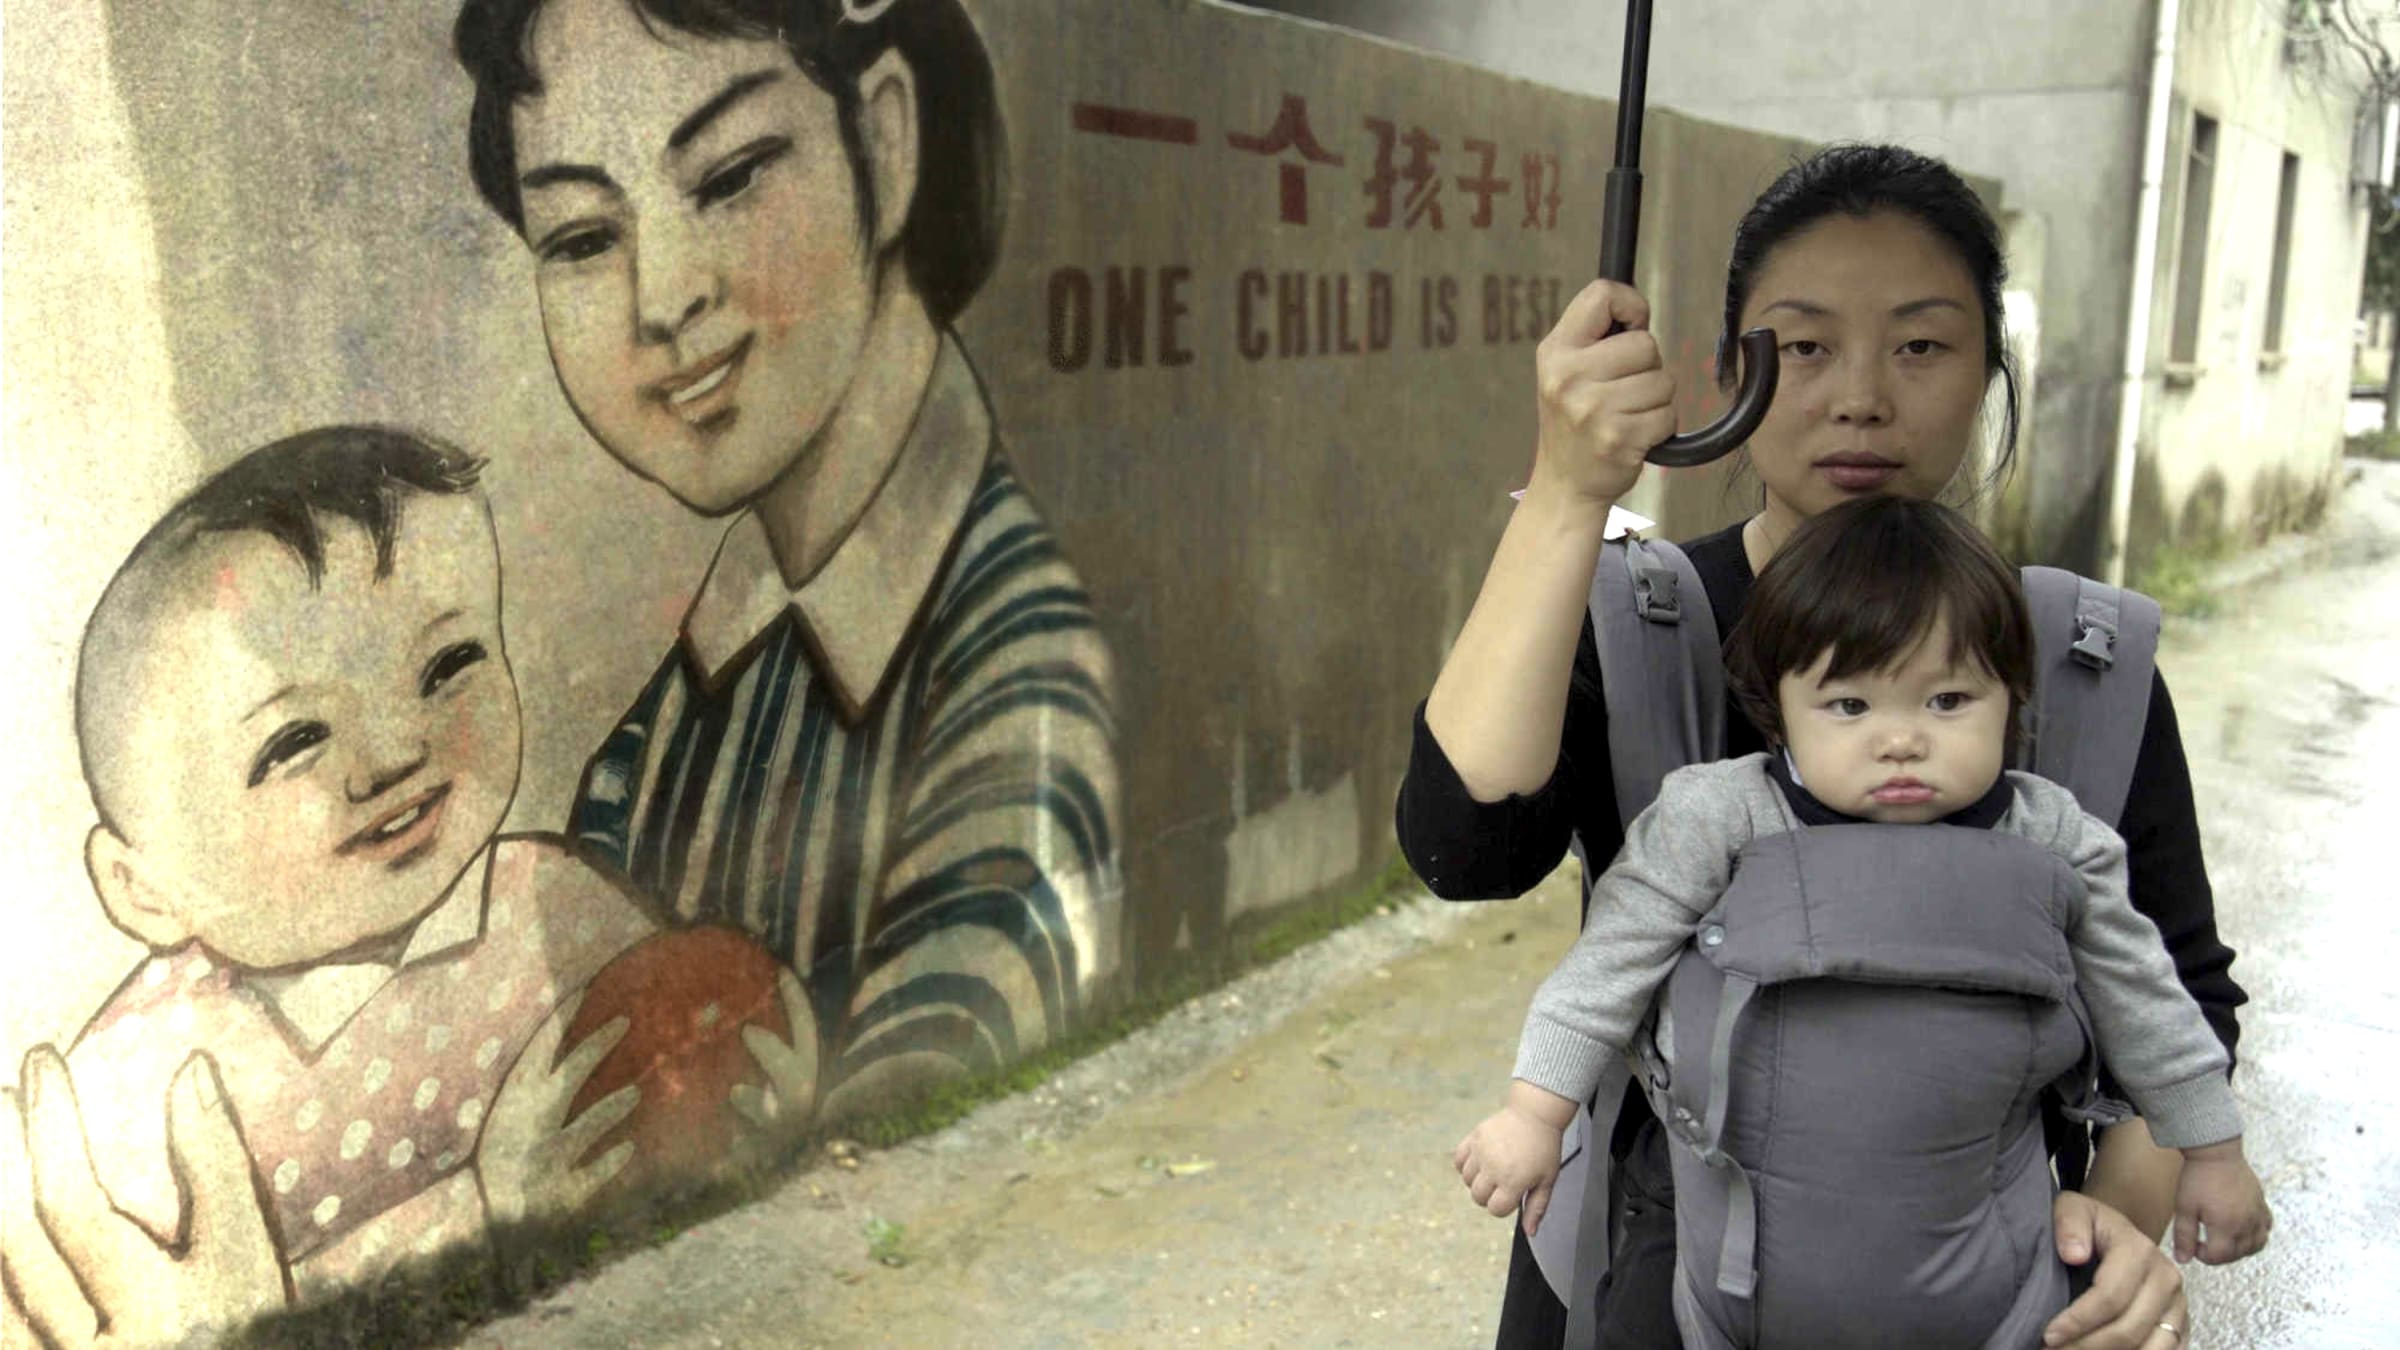 Immagine tratta dal film One Child Nation (Nanfu Wang e Jialing Zhang, 2019)